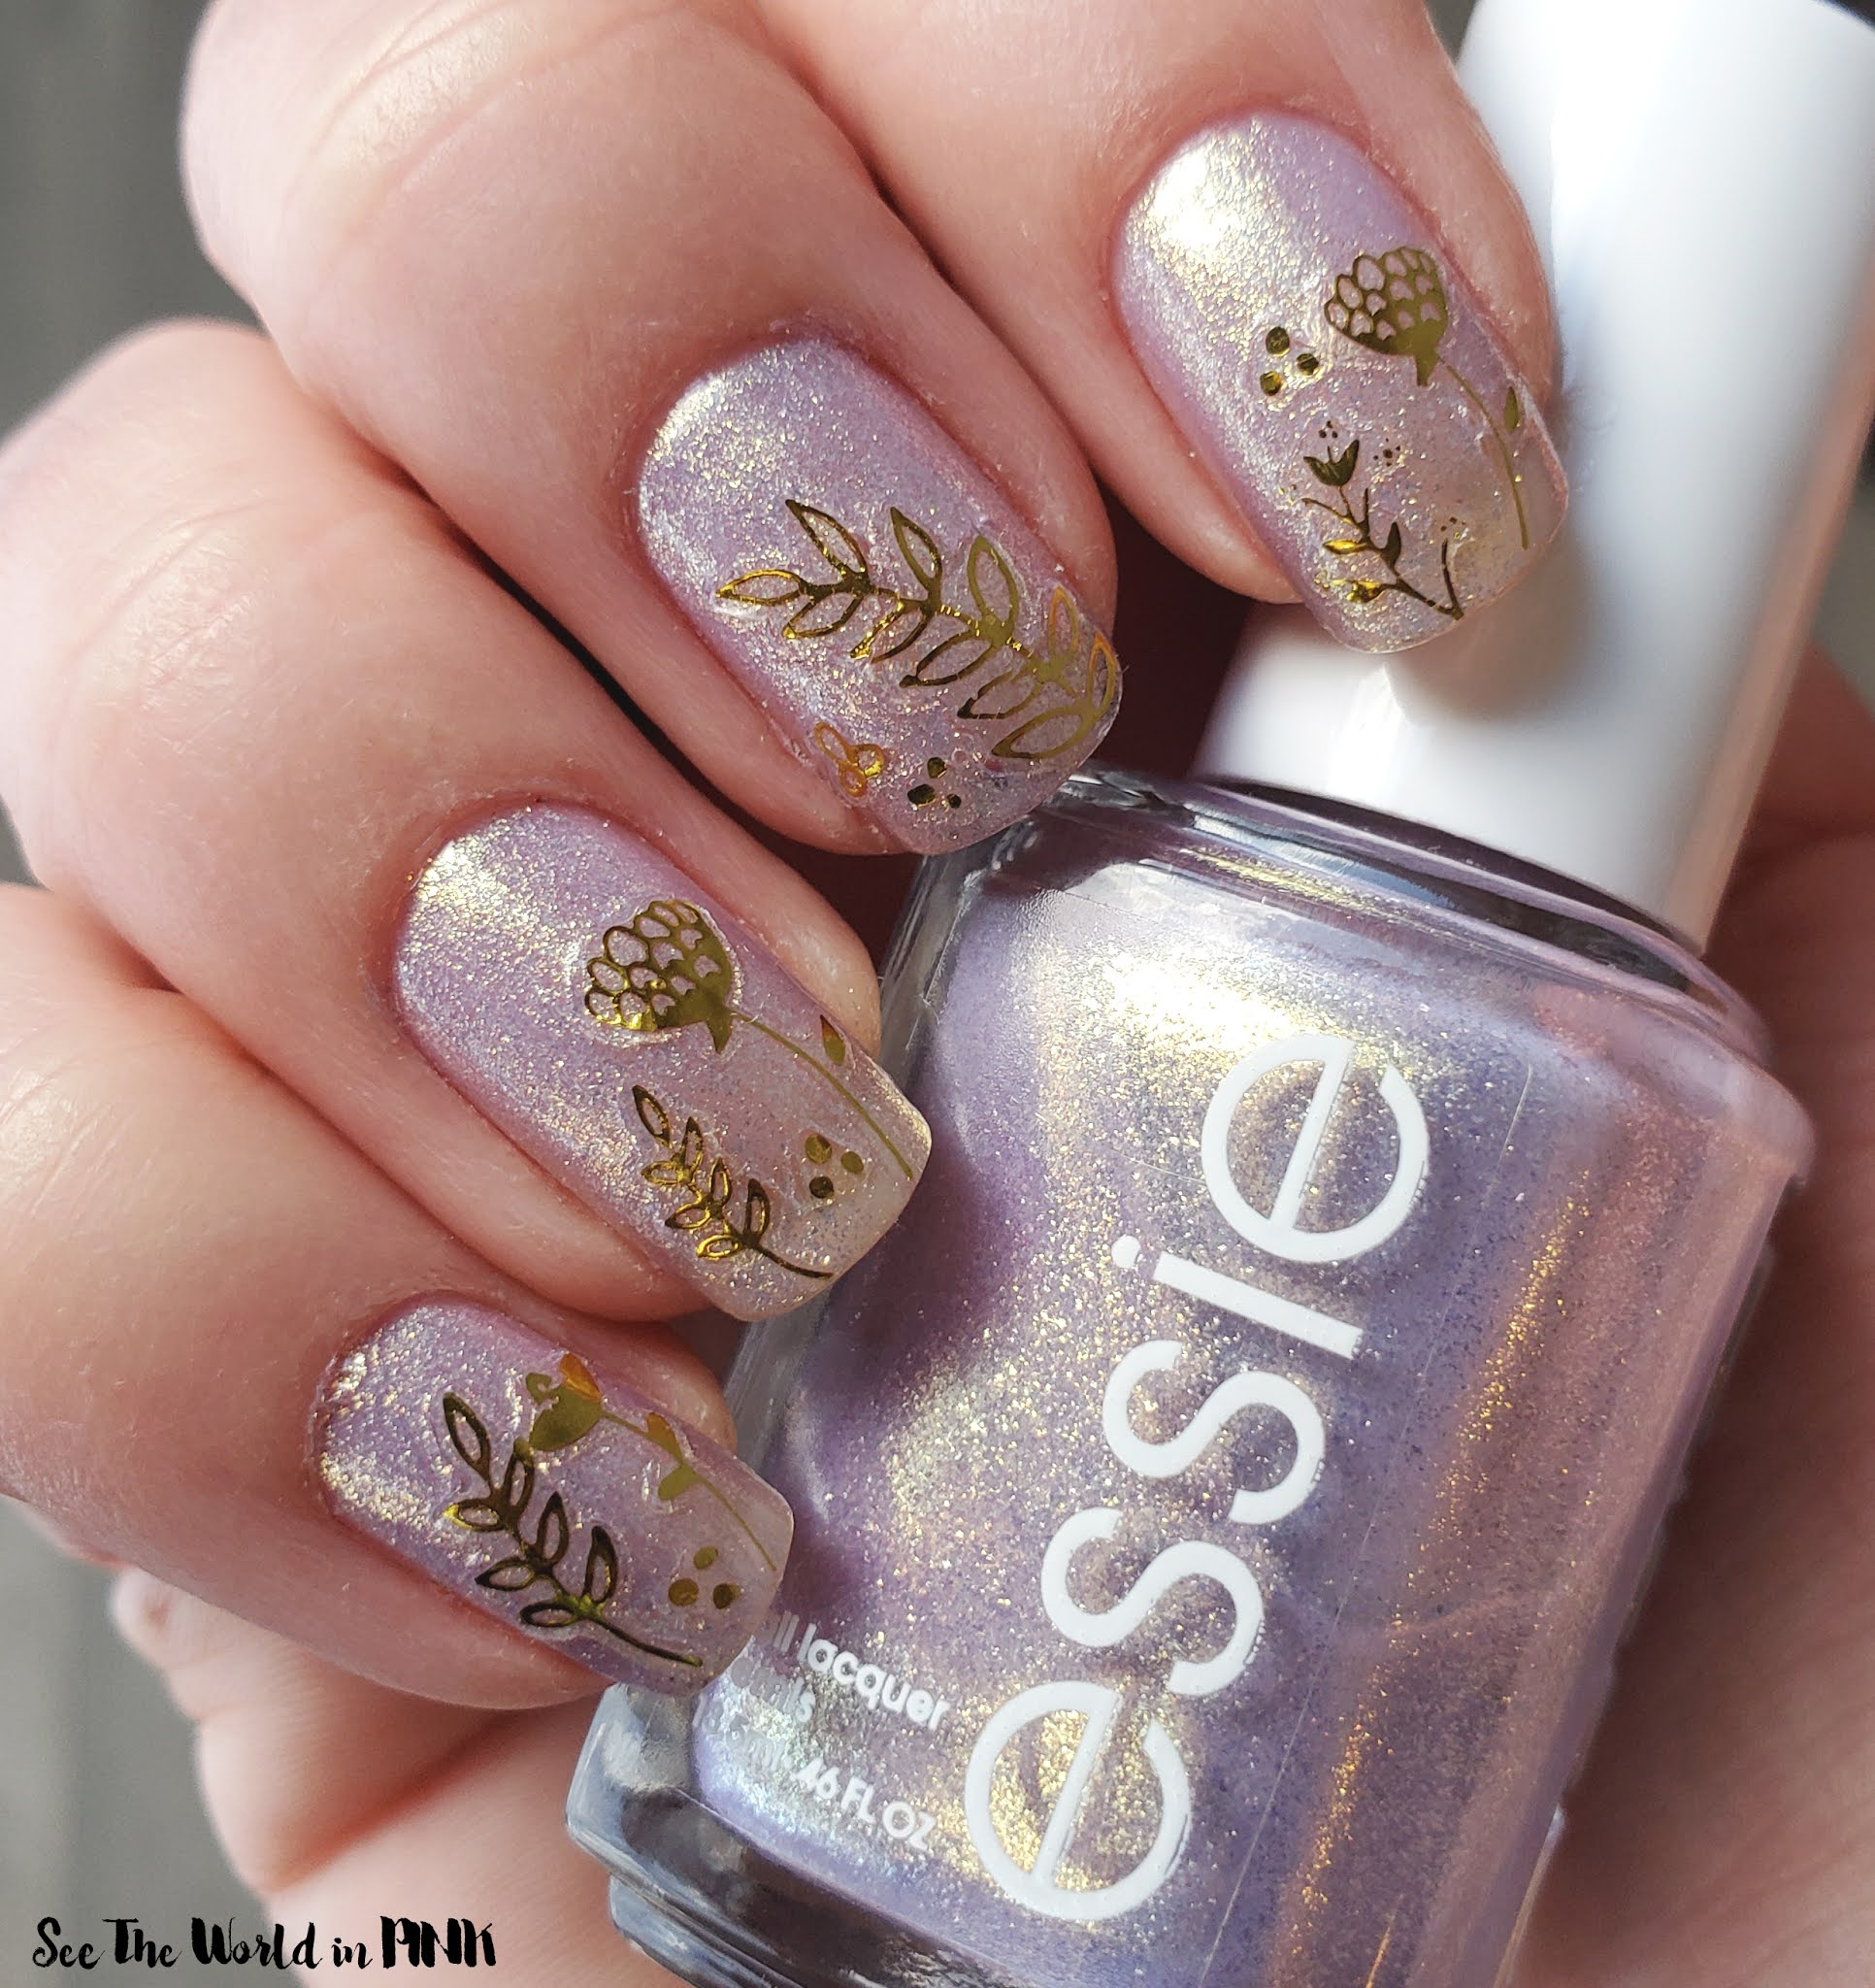 Manicure Monday - Essie Sugarplum Fairytale Polish + Gold Accents